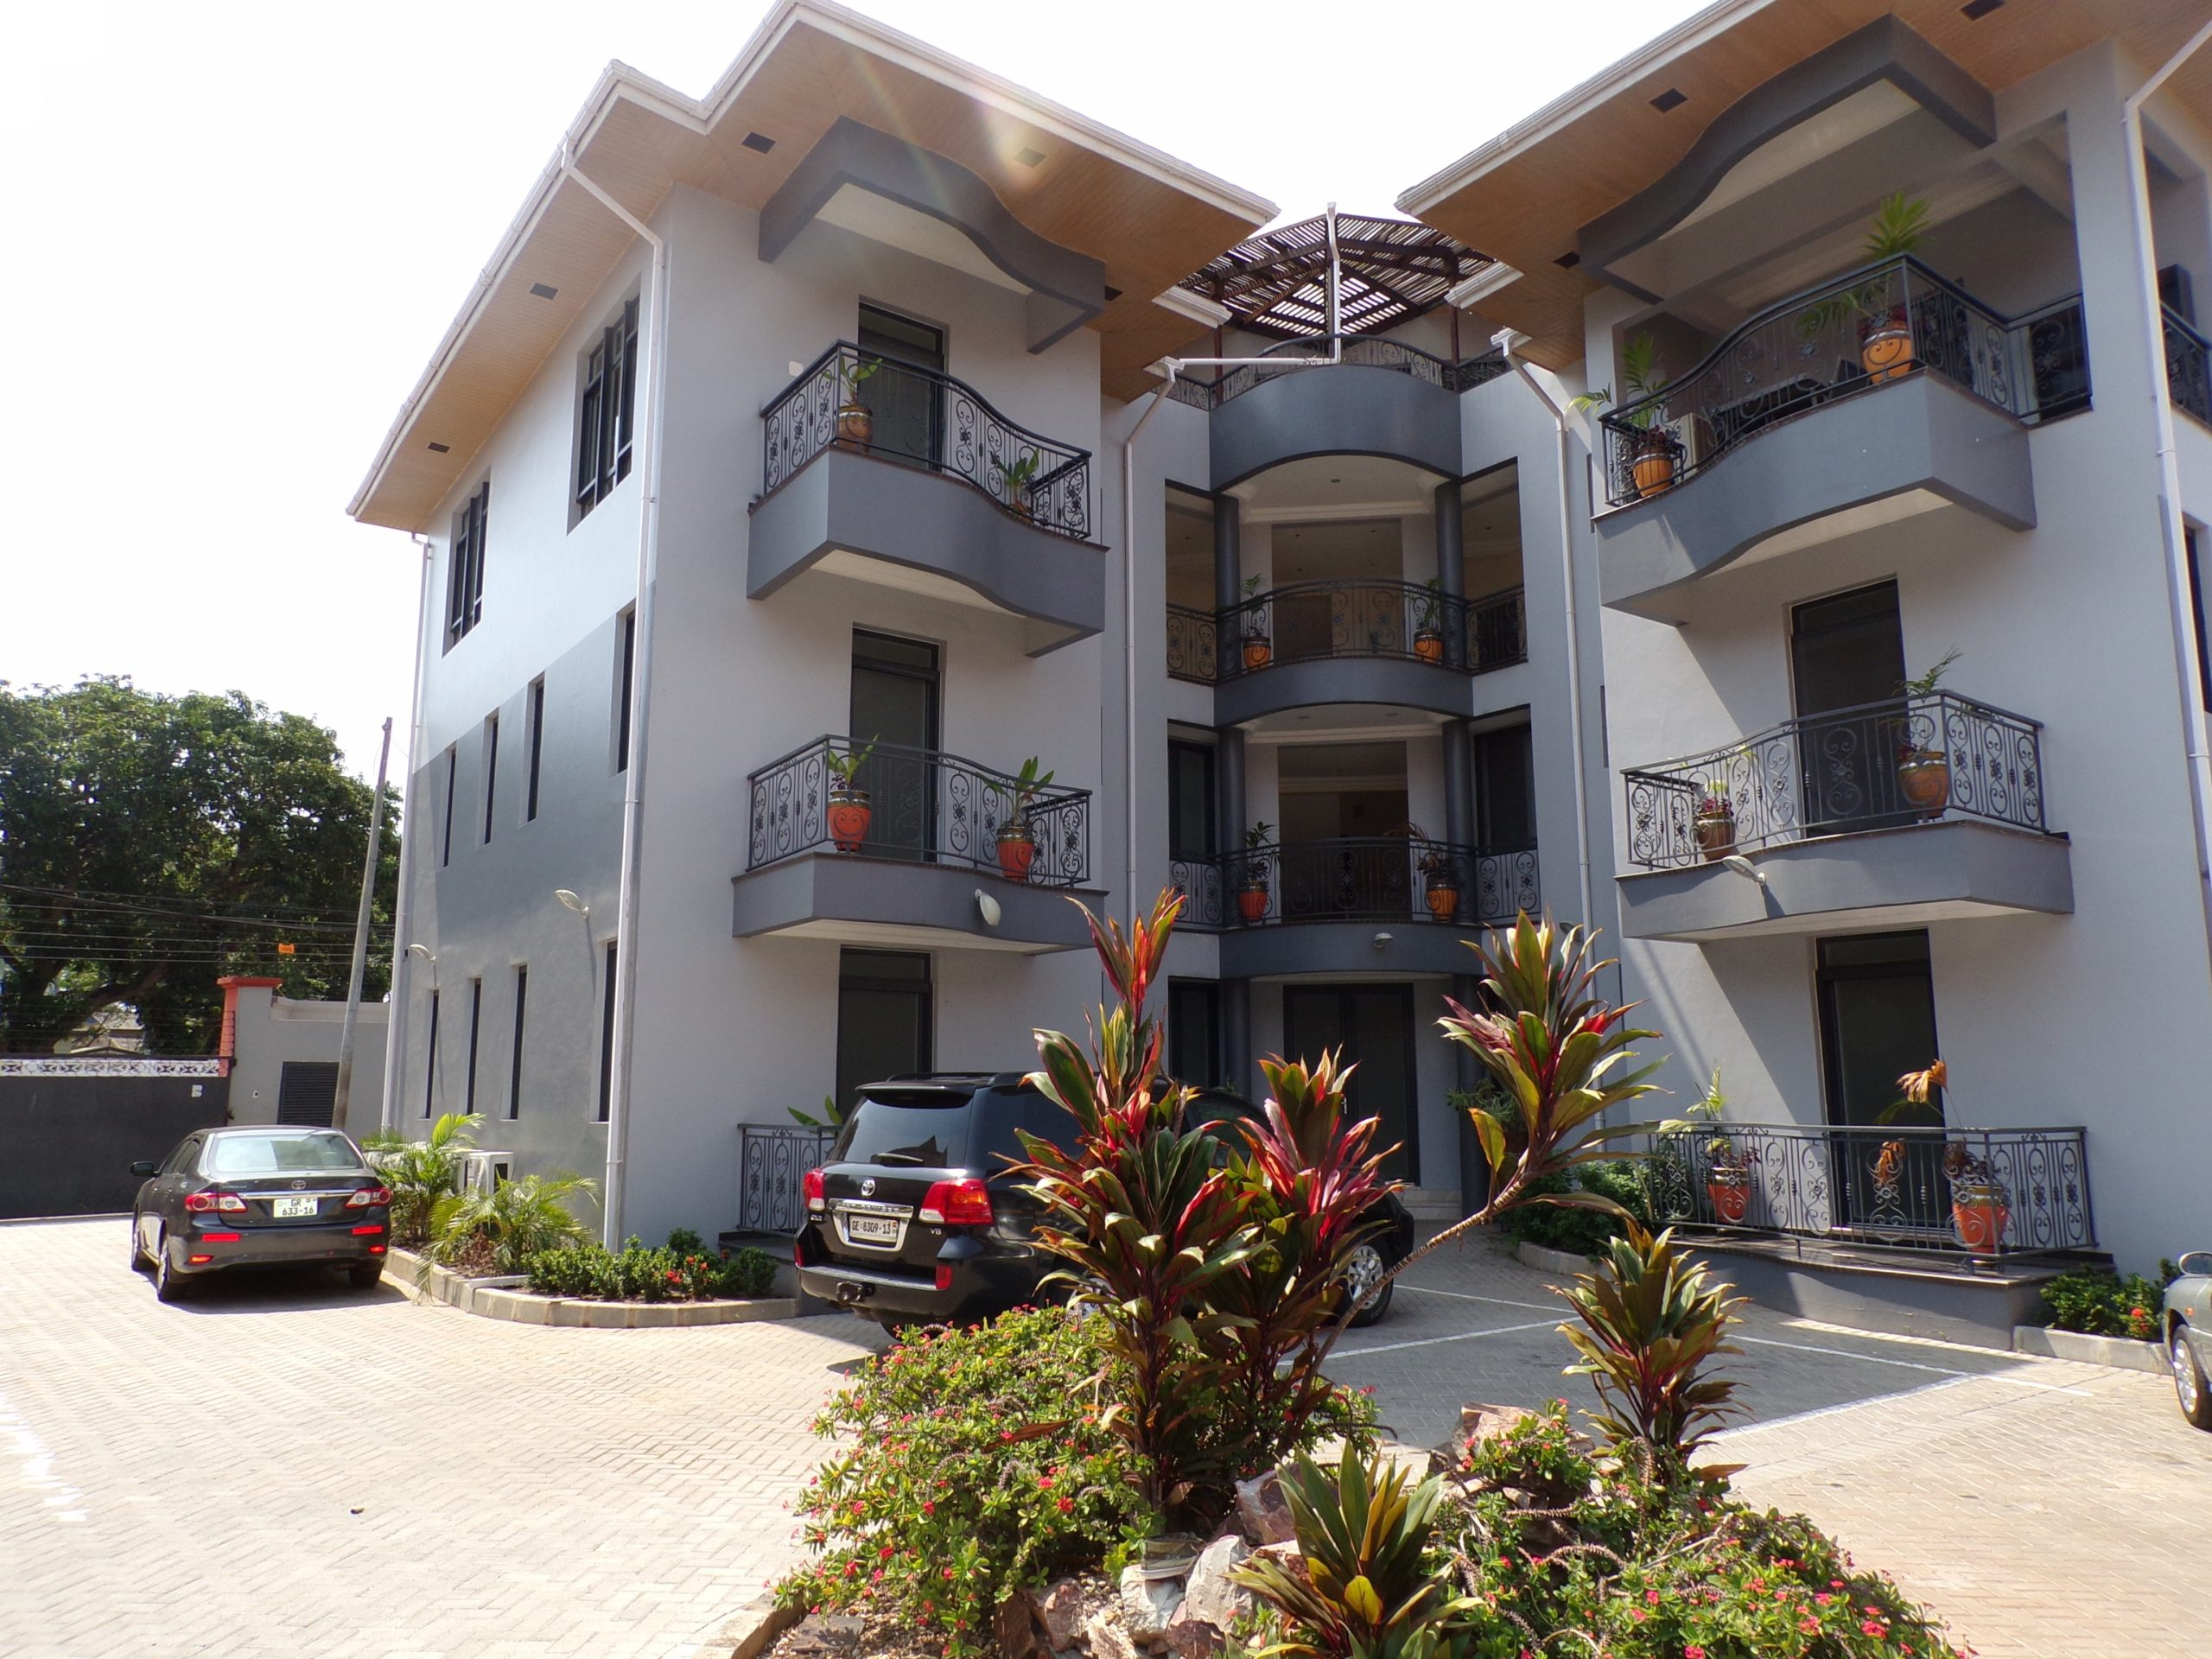 3 BEDROOM UNFURNISHED APARTMENT FOR RENT AT RIDGE